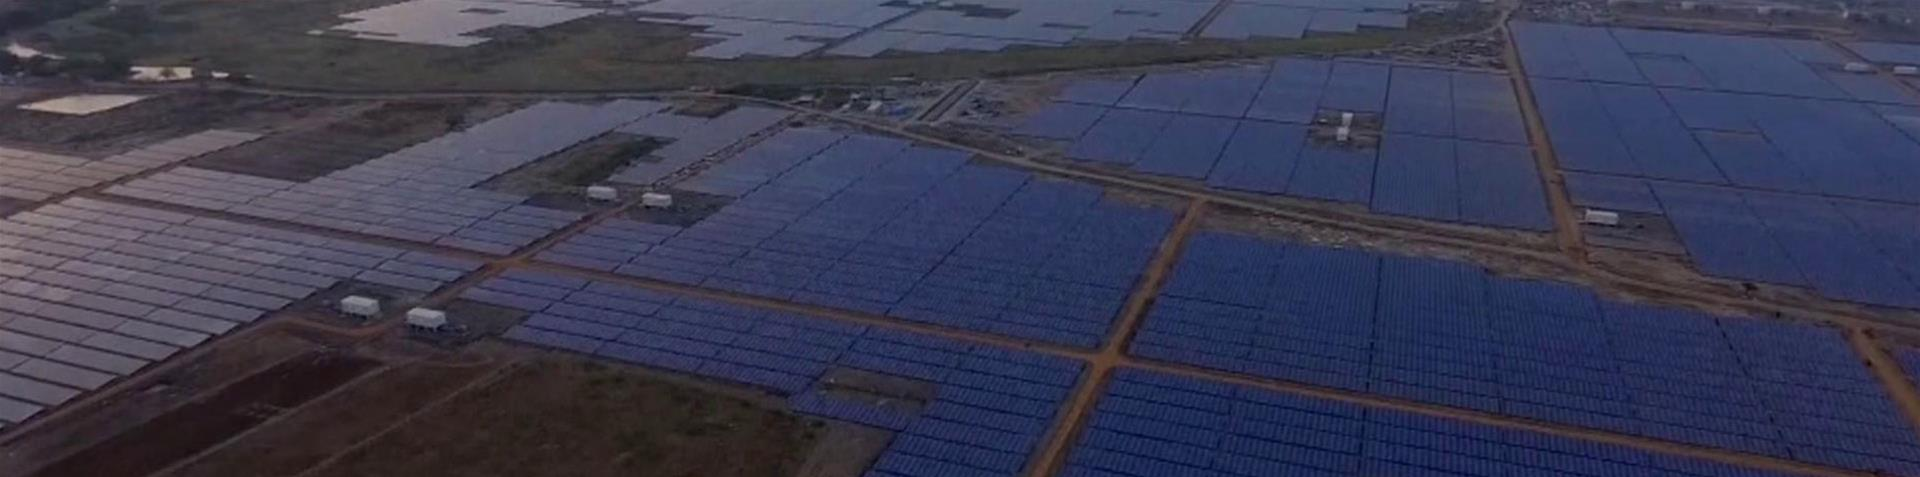 India Opens The World's Largest Solar Power Plant That Can Power 150,000 Homes